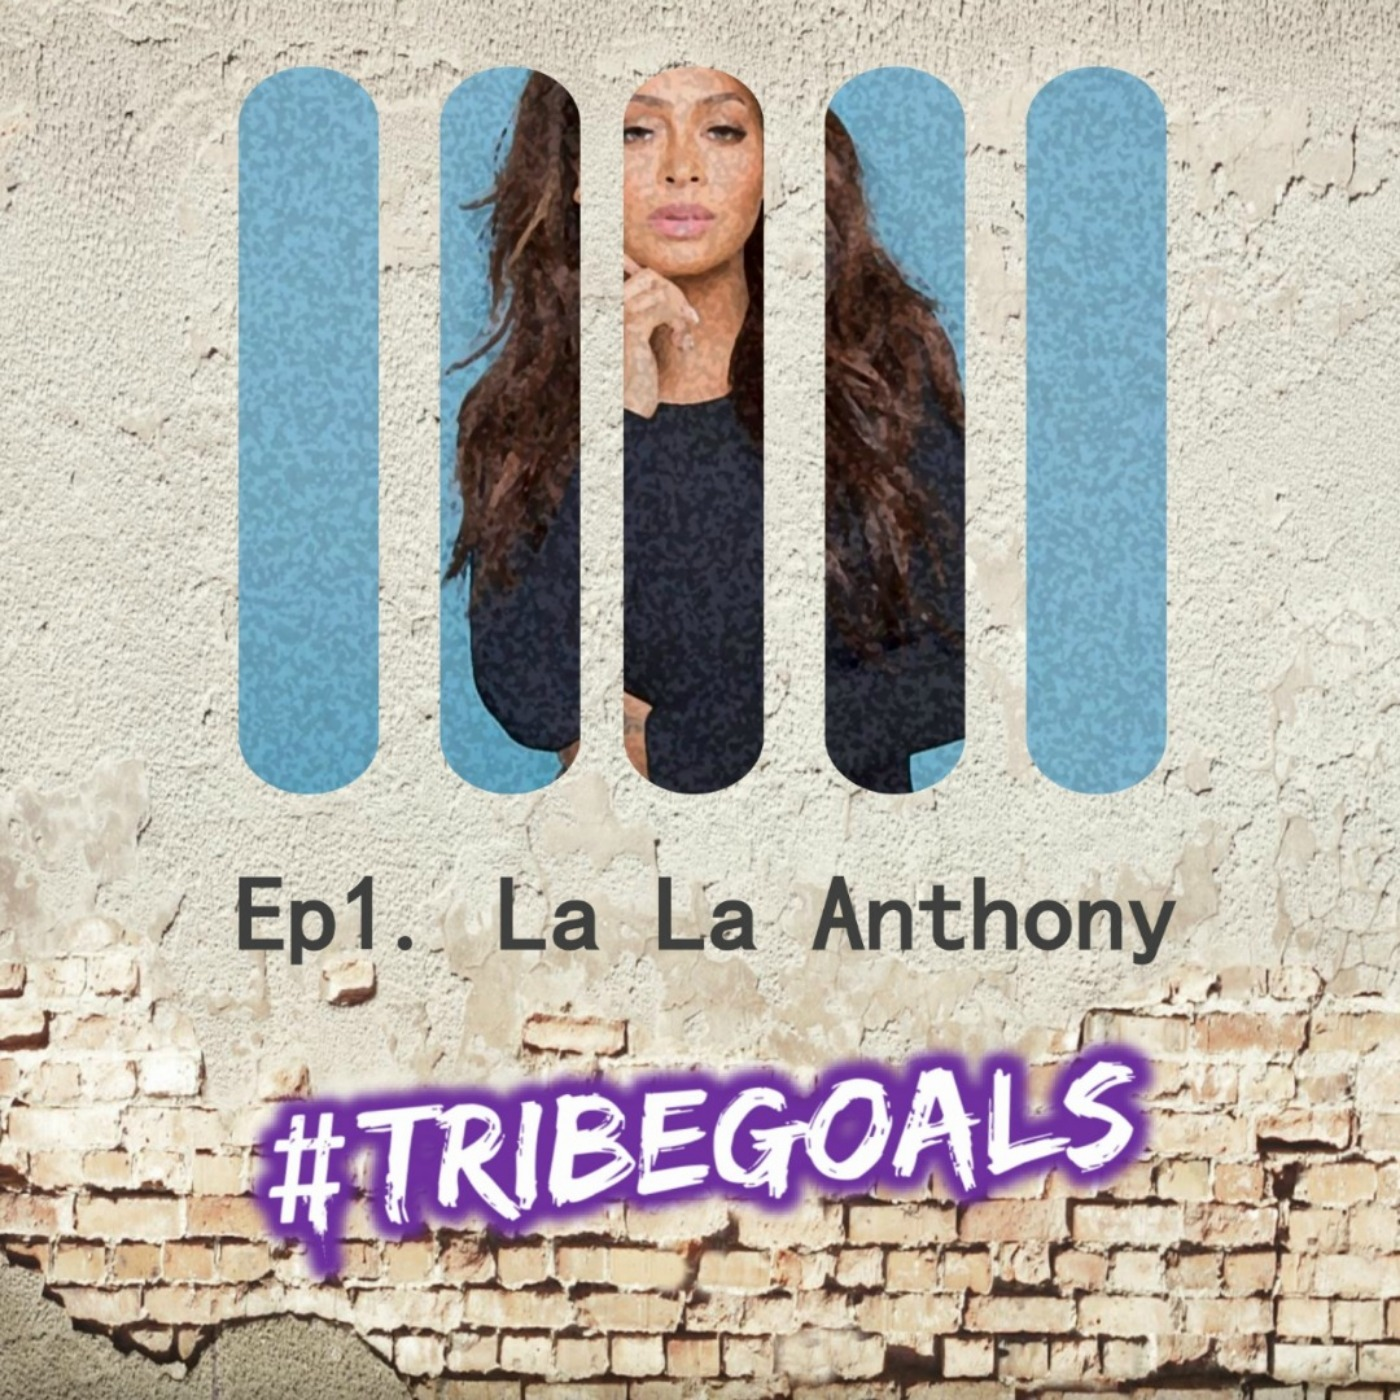 S1. Ep 1. | #TRIBEGOALS with La La Anthony